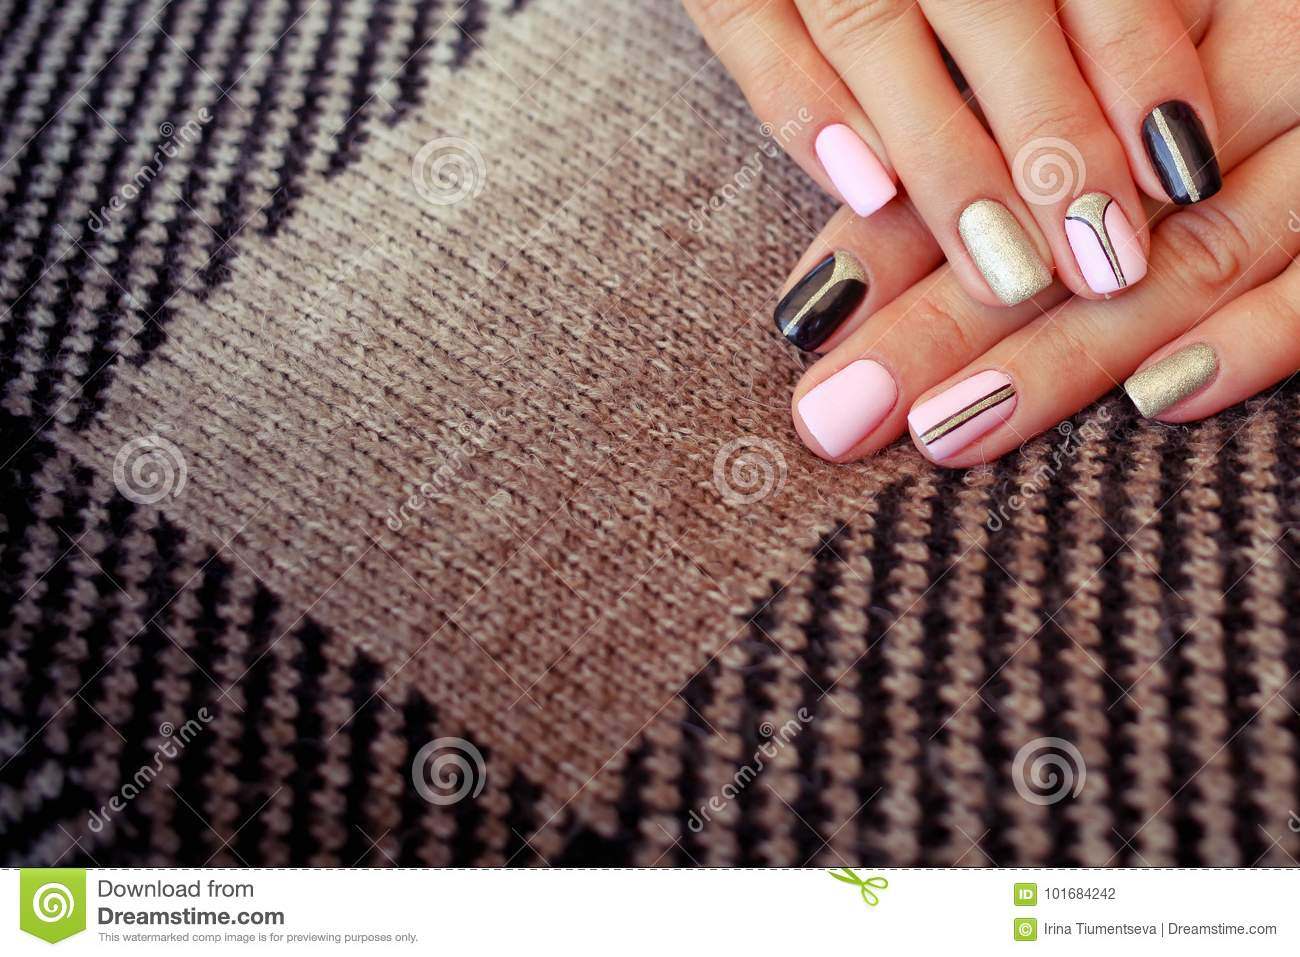 Perfect Clean Manicure With Zero Cuticle. Nail Art Design For The ...